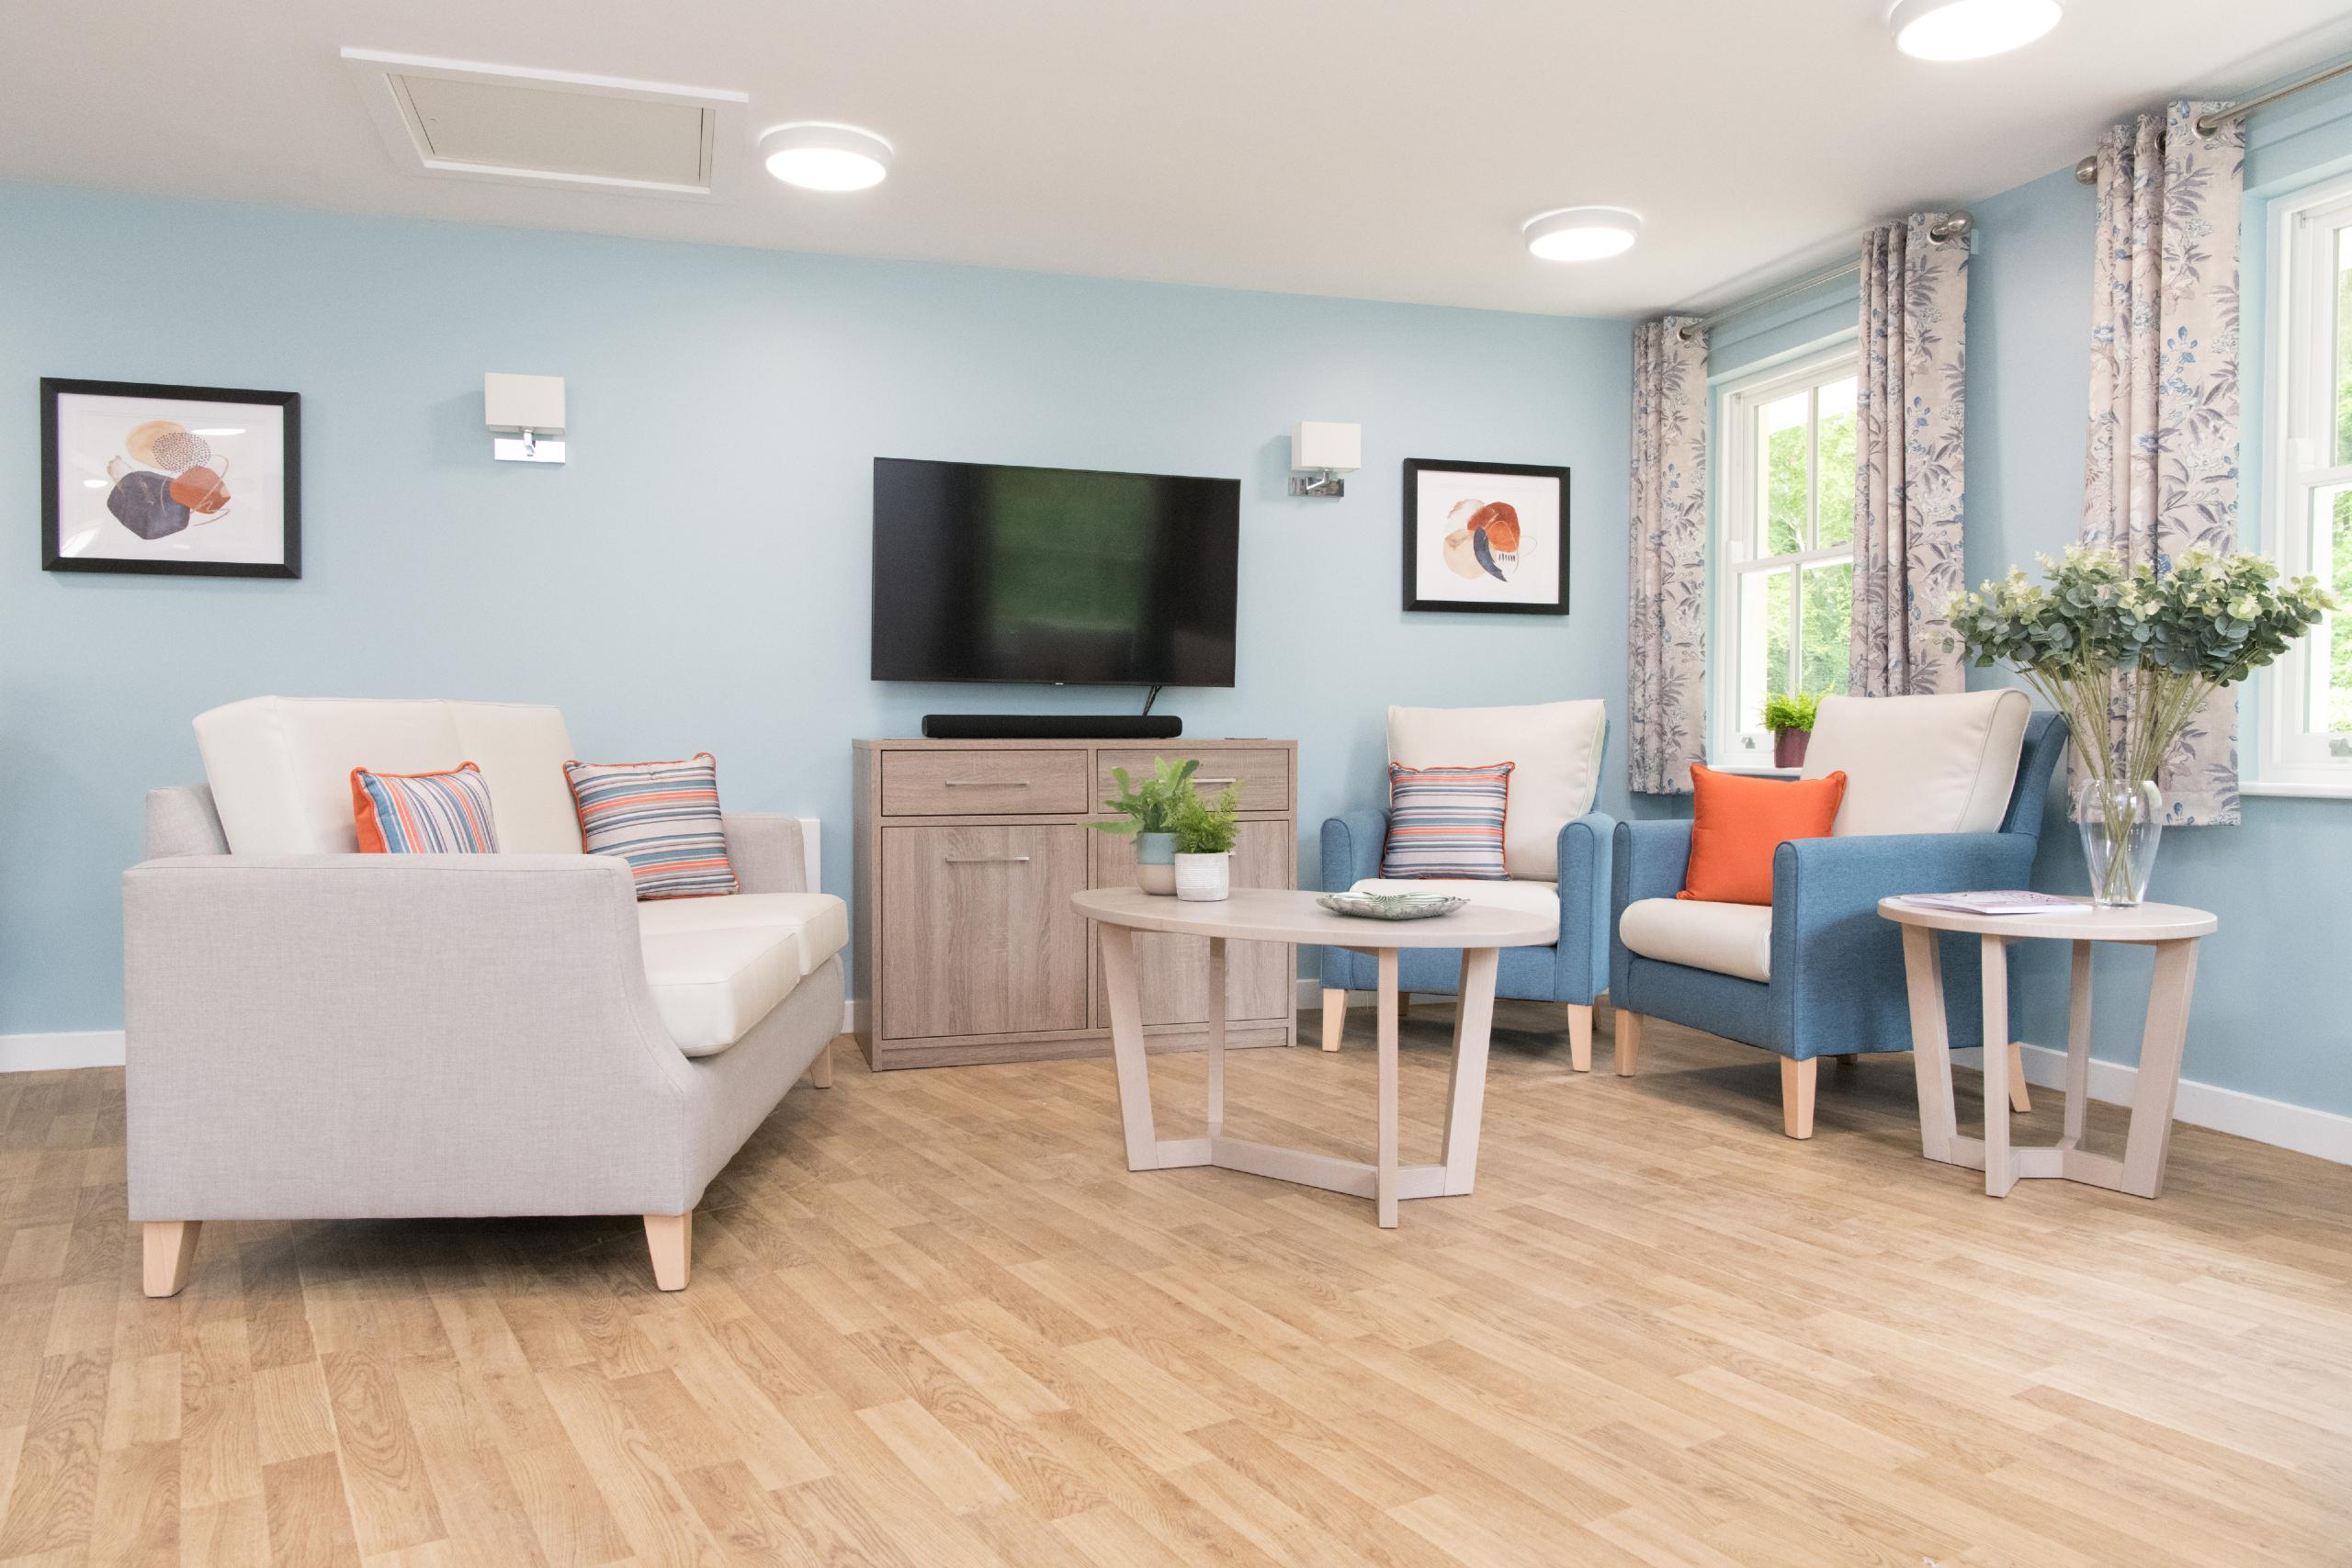 How can your furniture assist with infection control in care homes?